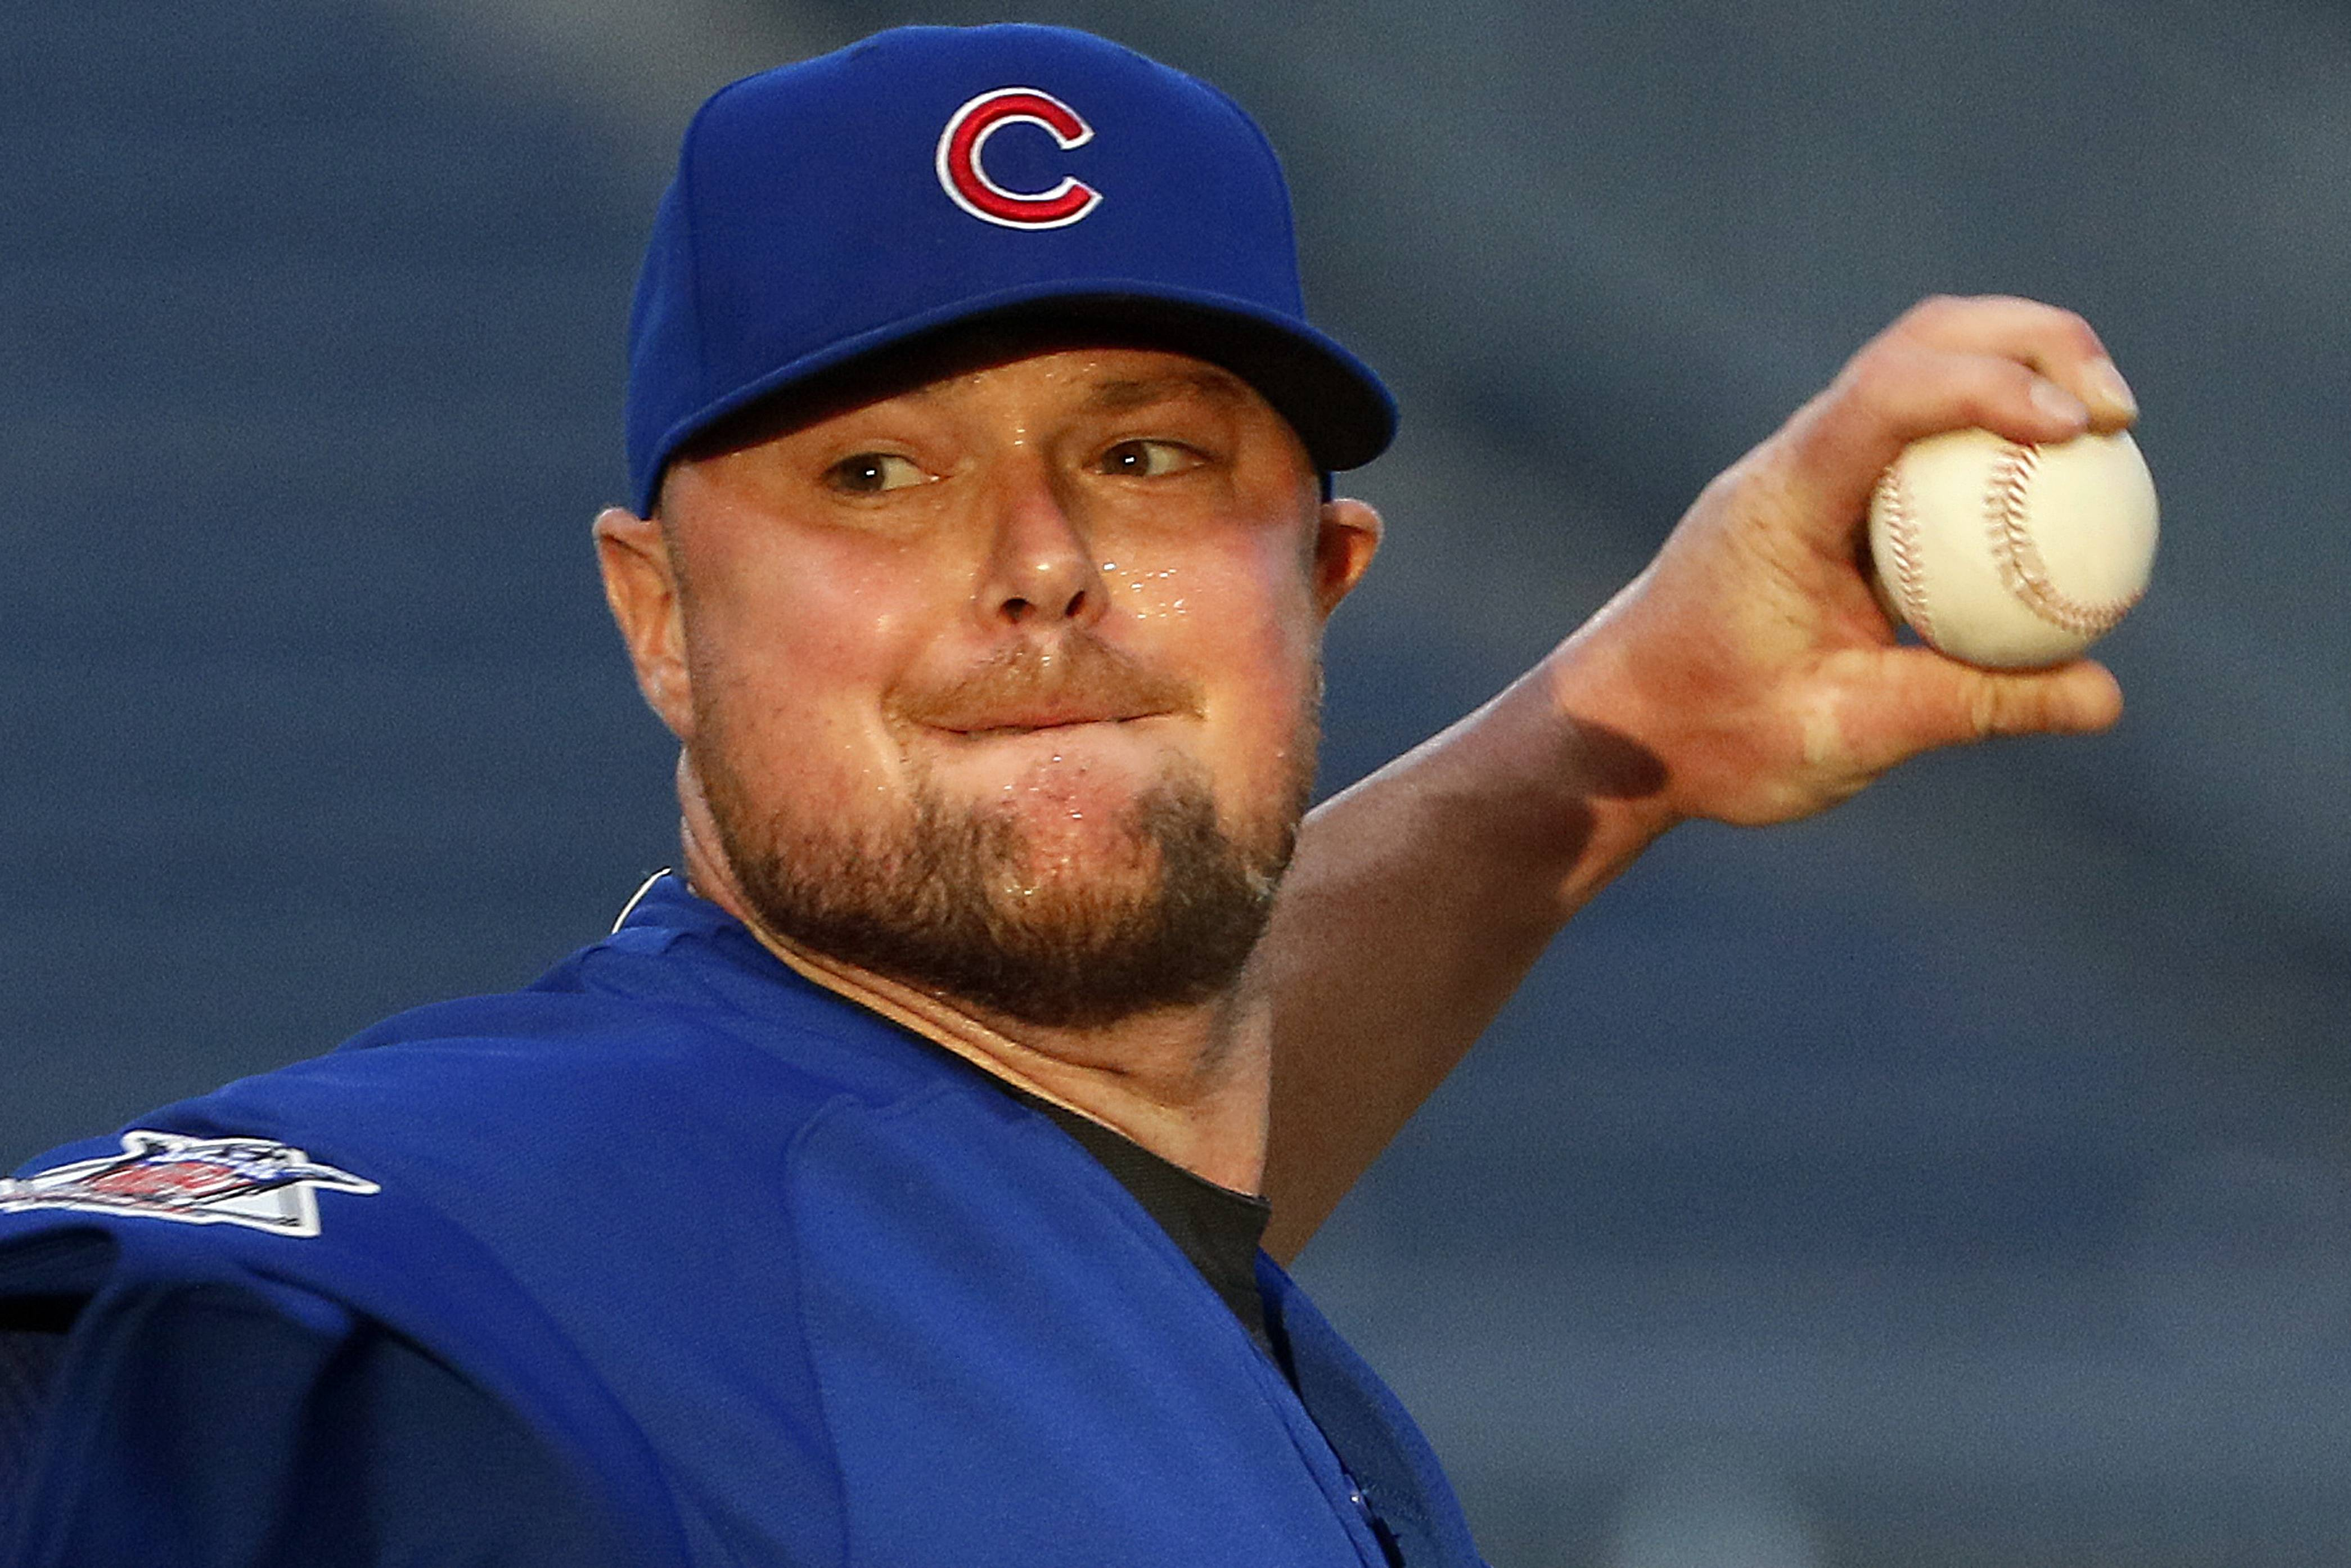 Associated PressChicago Cubs ace lefty Jon Lester finished April without a win. Lester fell to 0-1 Wednesday night during a 6-5 Cubs loss to the Pittsburgh Pirates at PNC Park.